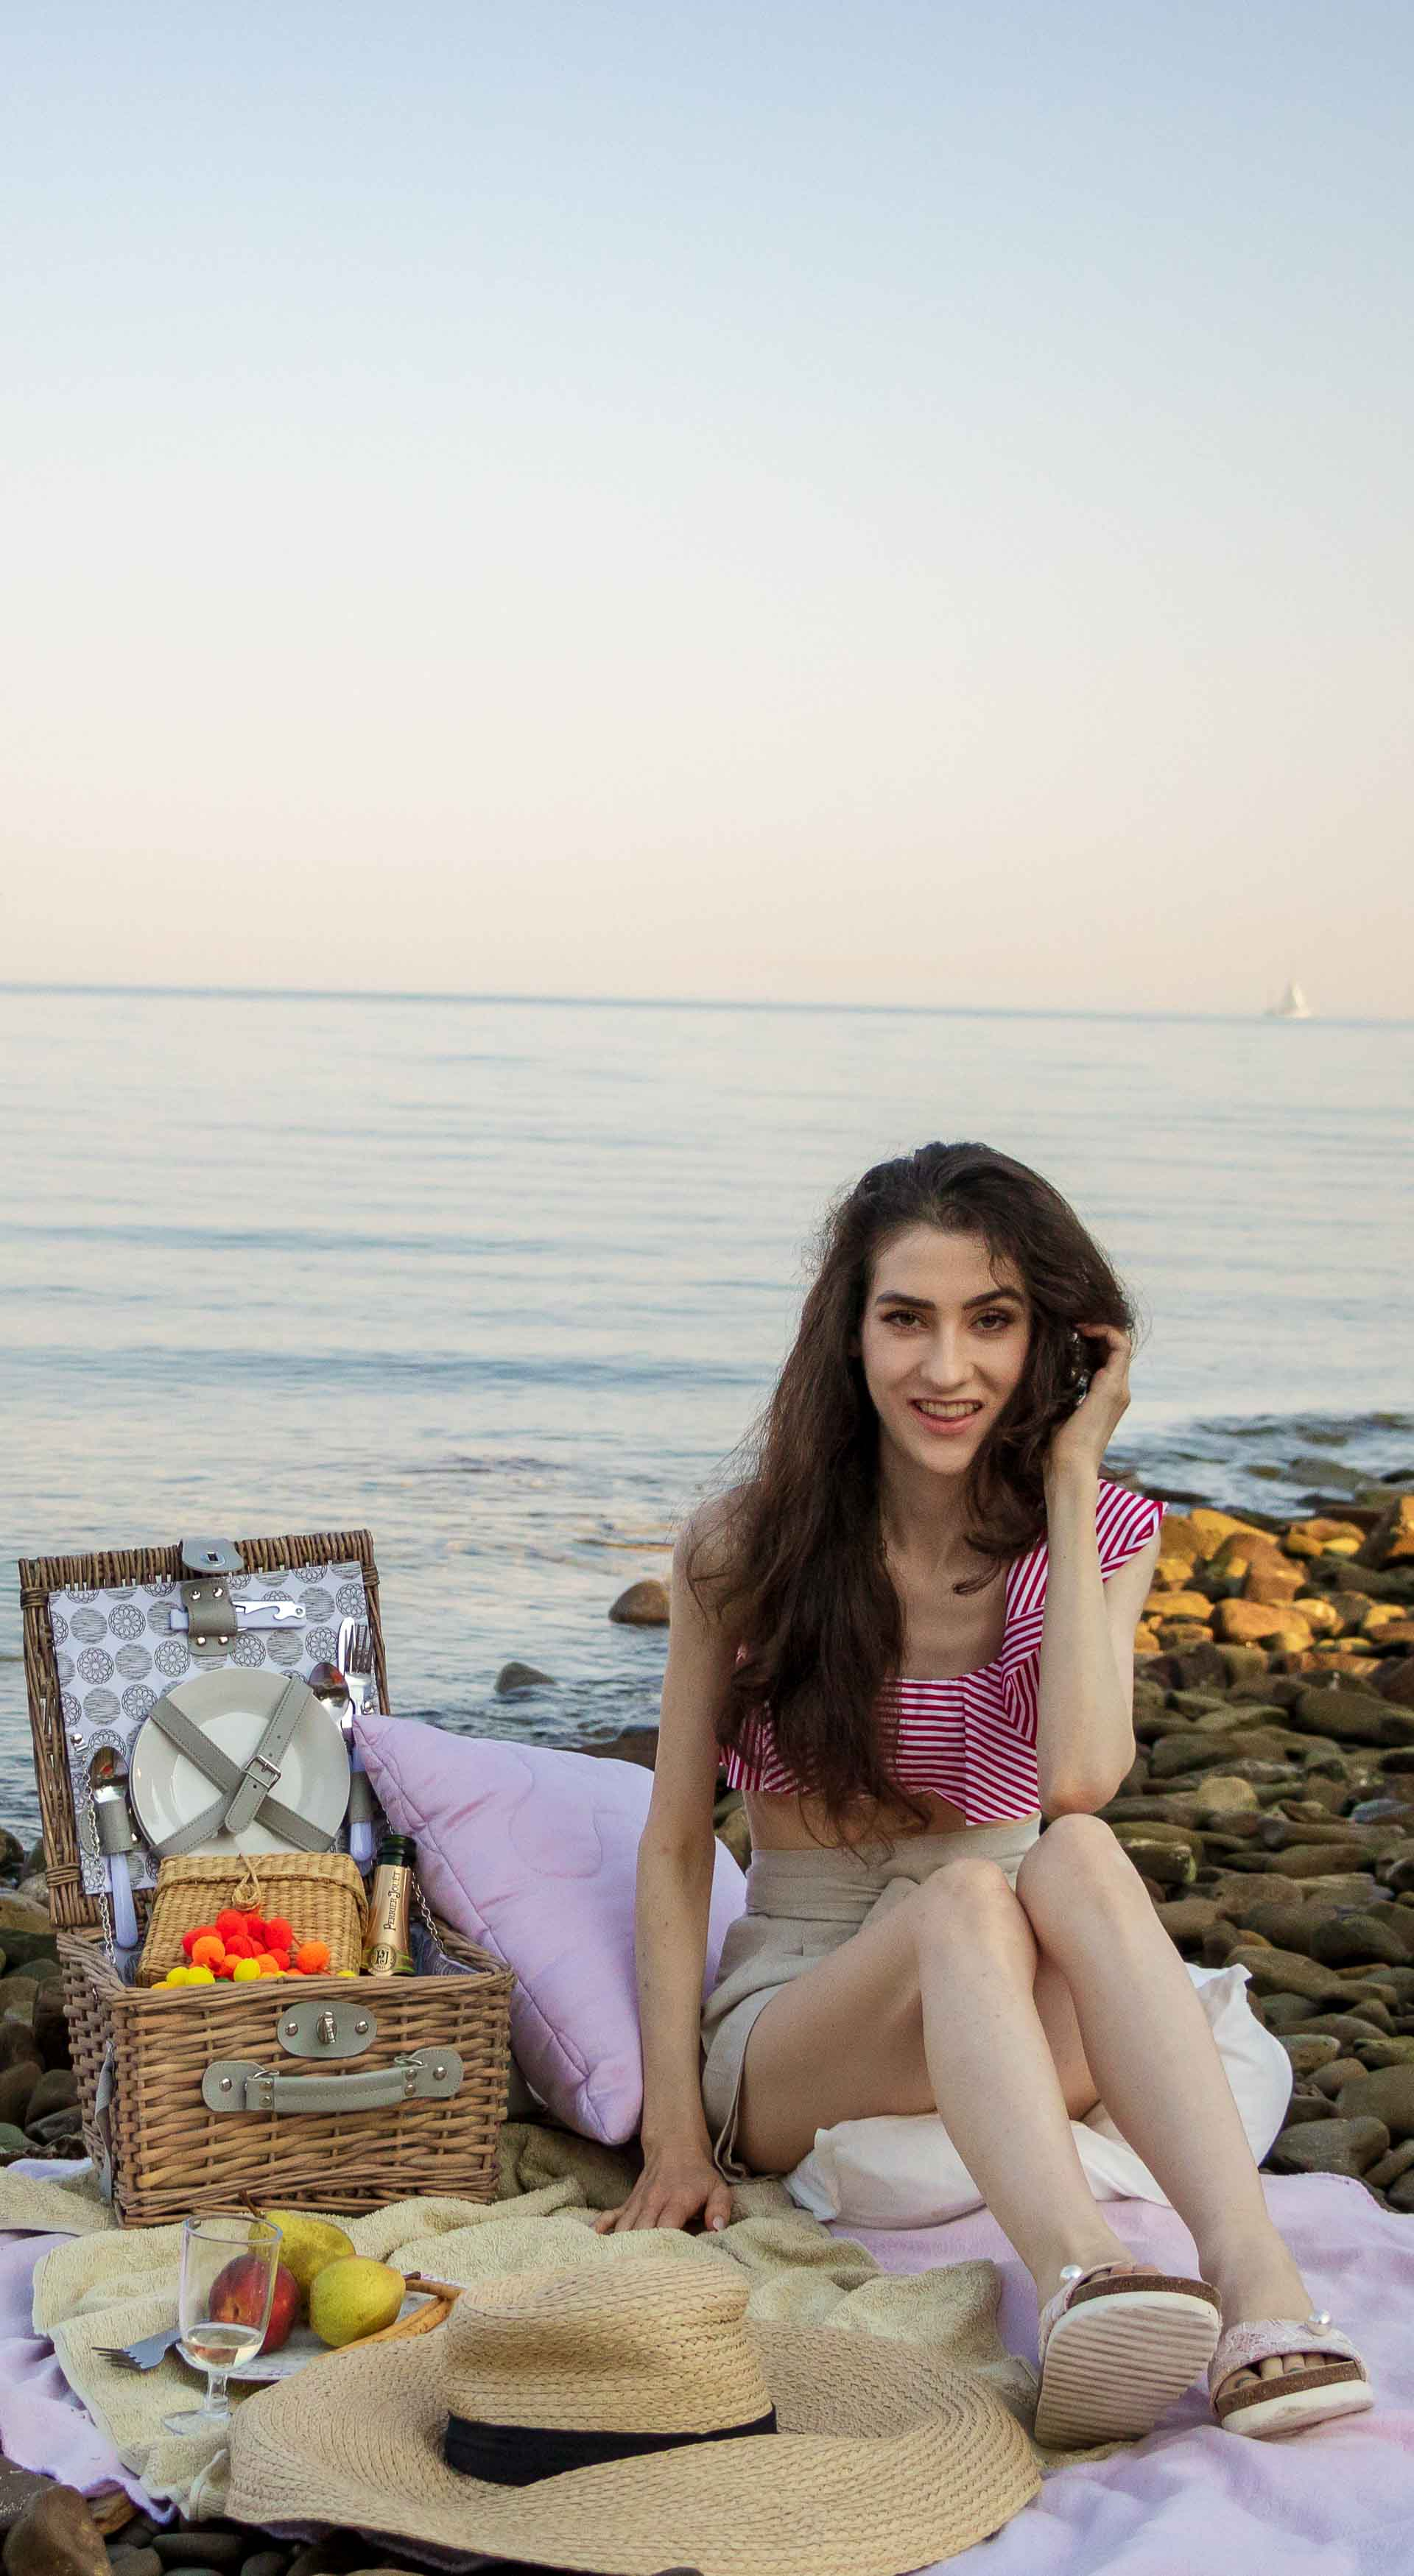 Slovenian Fashion Blogger Veronika Lipar of Brunette from Wall wearing Calzedonia red striped bikini top, paper bag linen shorts, luxe pool slides, large straw hat, Nannacay basket bag while sitting on a picnic blanket, having picnic on the beach